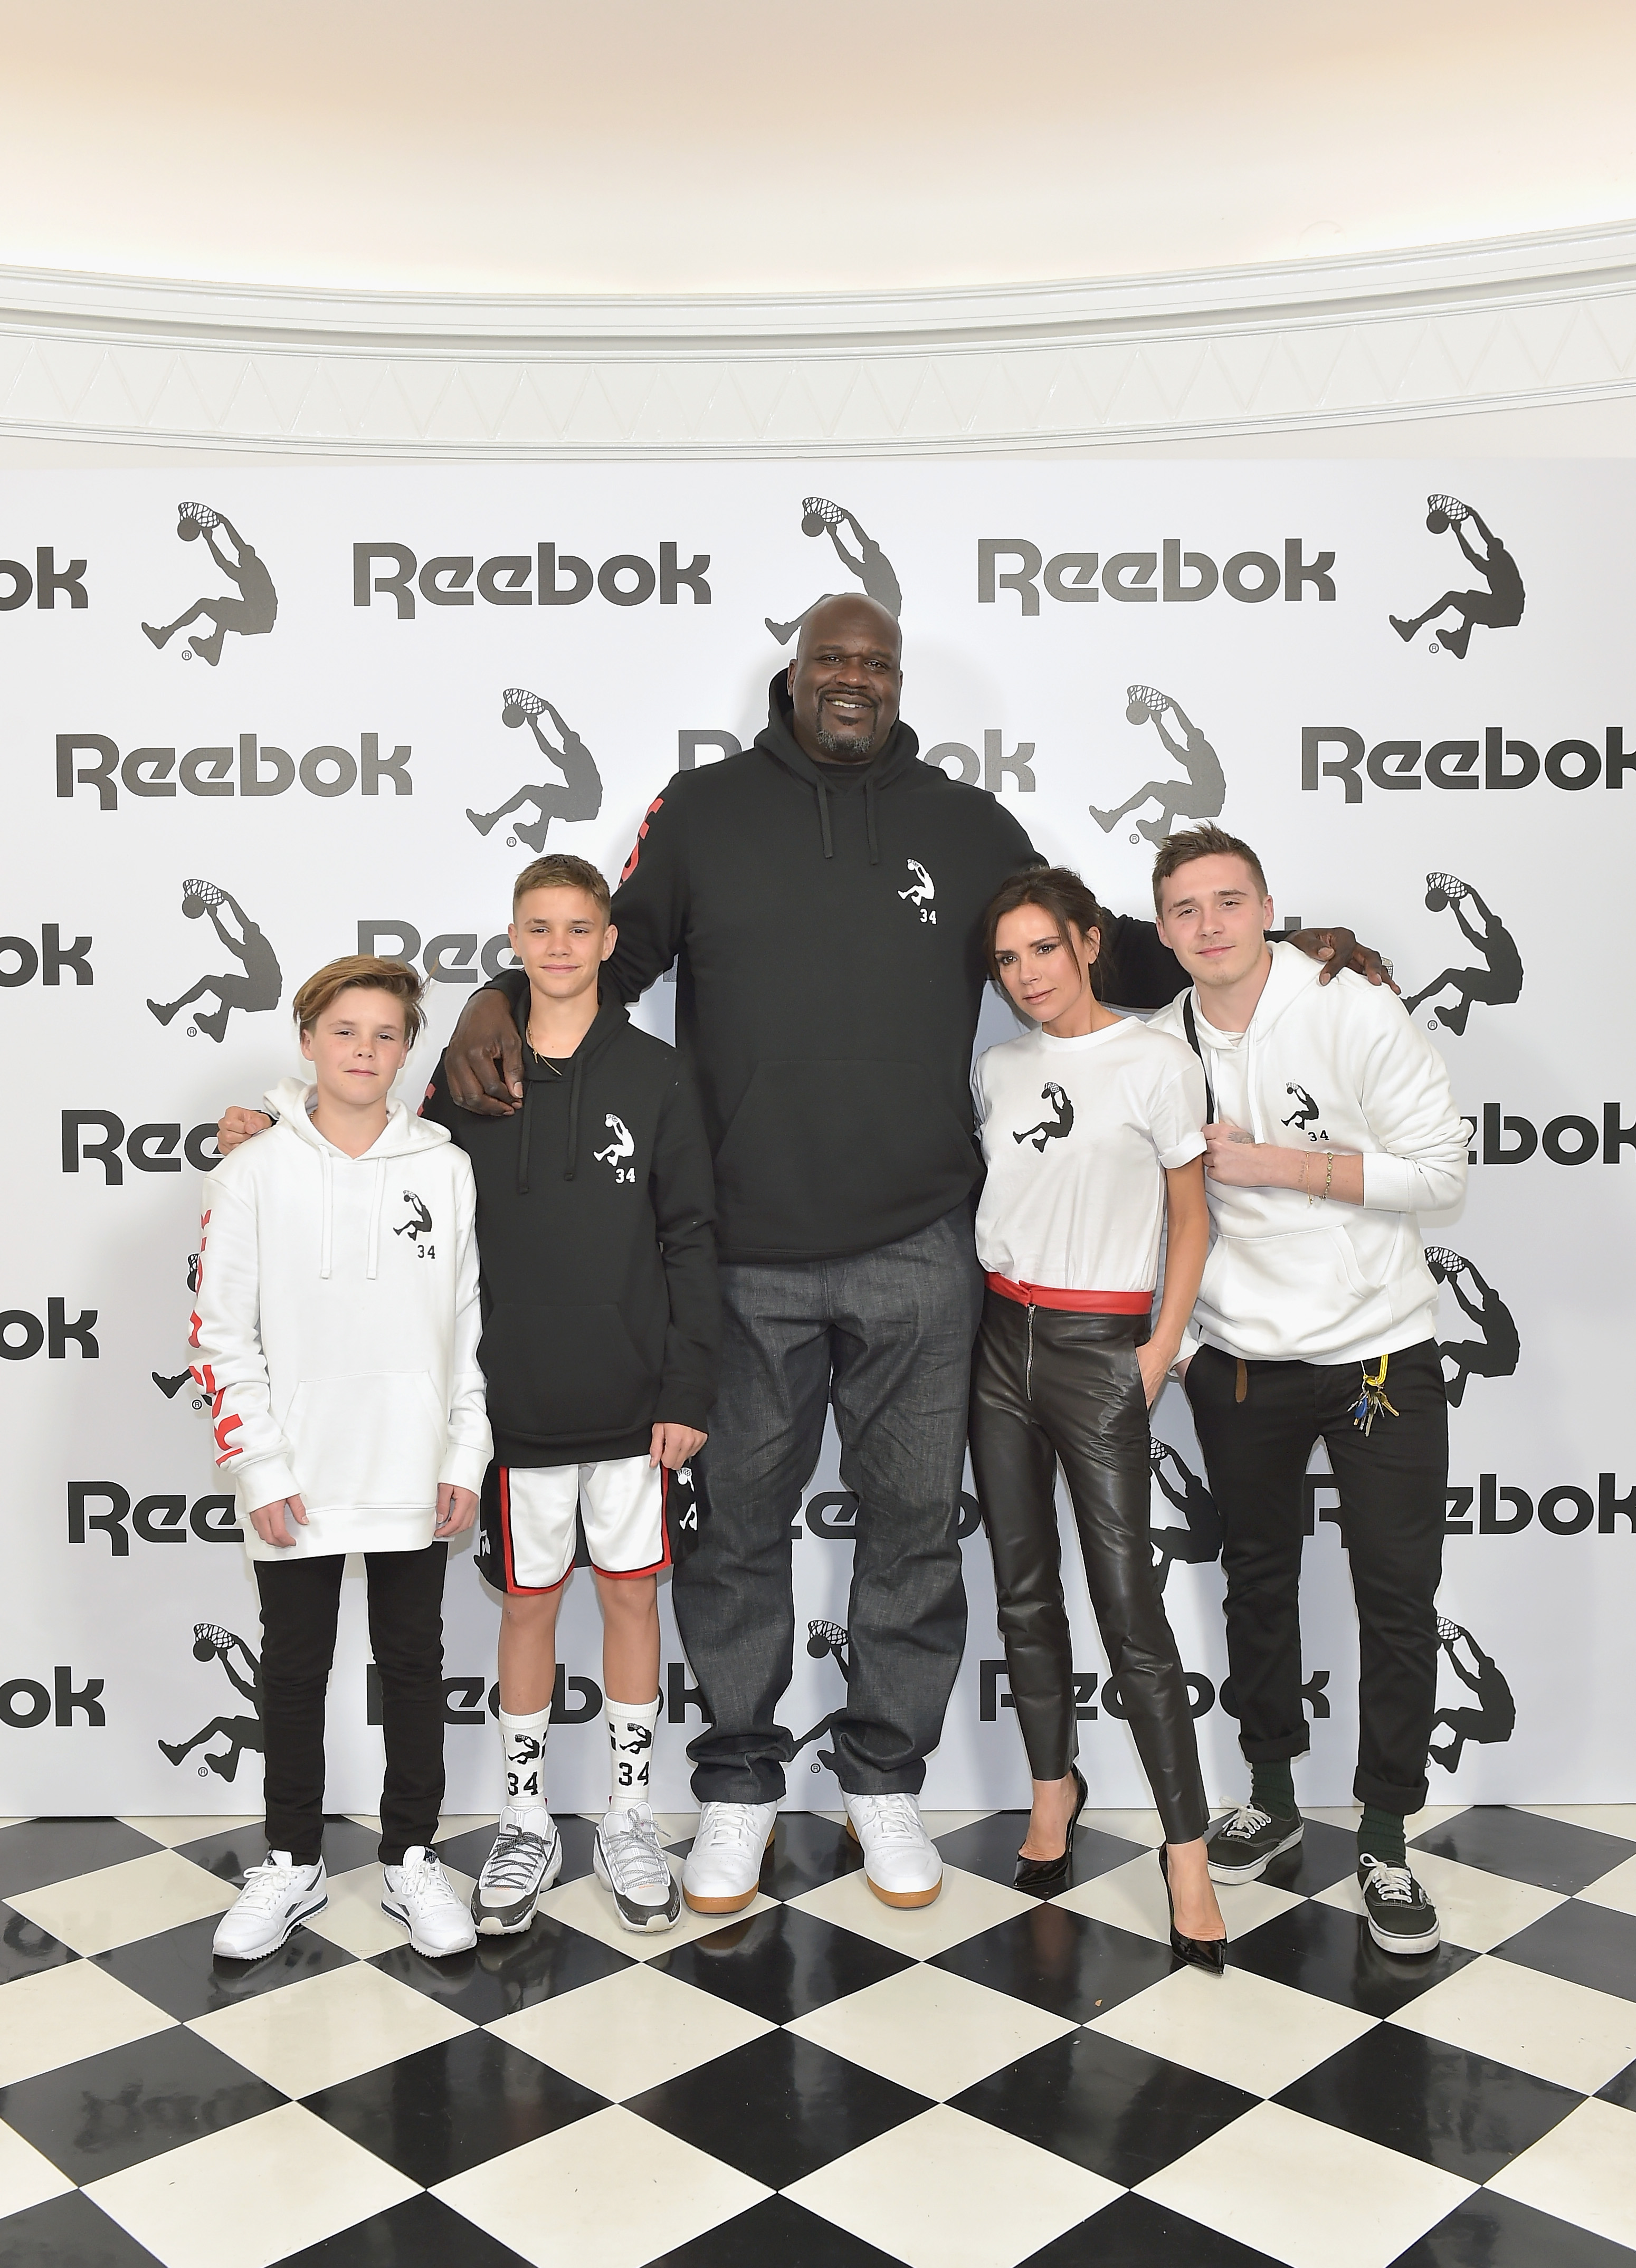 Cruz Beckham, Romeo Beckham, Shaquille O'Neal, Victoria Beckham and Brooklyn Beckham attend an event celebrating Reebok and Victoria Beckham celebrate their partnership. Special guest Shaquille O'Neal officially welcomes Victoria to the Reebok Team at The House on Sunset on April 12, 2018 in Beverly Hills, California. (Photo by Donato Sardella/Getty Images for Reebok) *** Local Caption *** Cruz Beckham, Romeo Beckham, Shaquille O'Neal, Victoria Beckham;Brooklyn Beckham